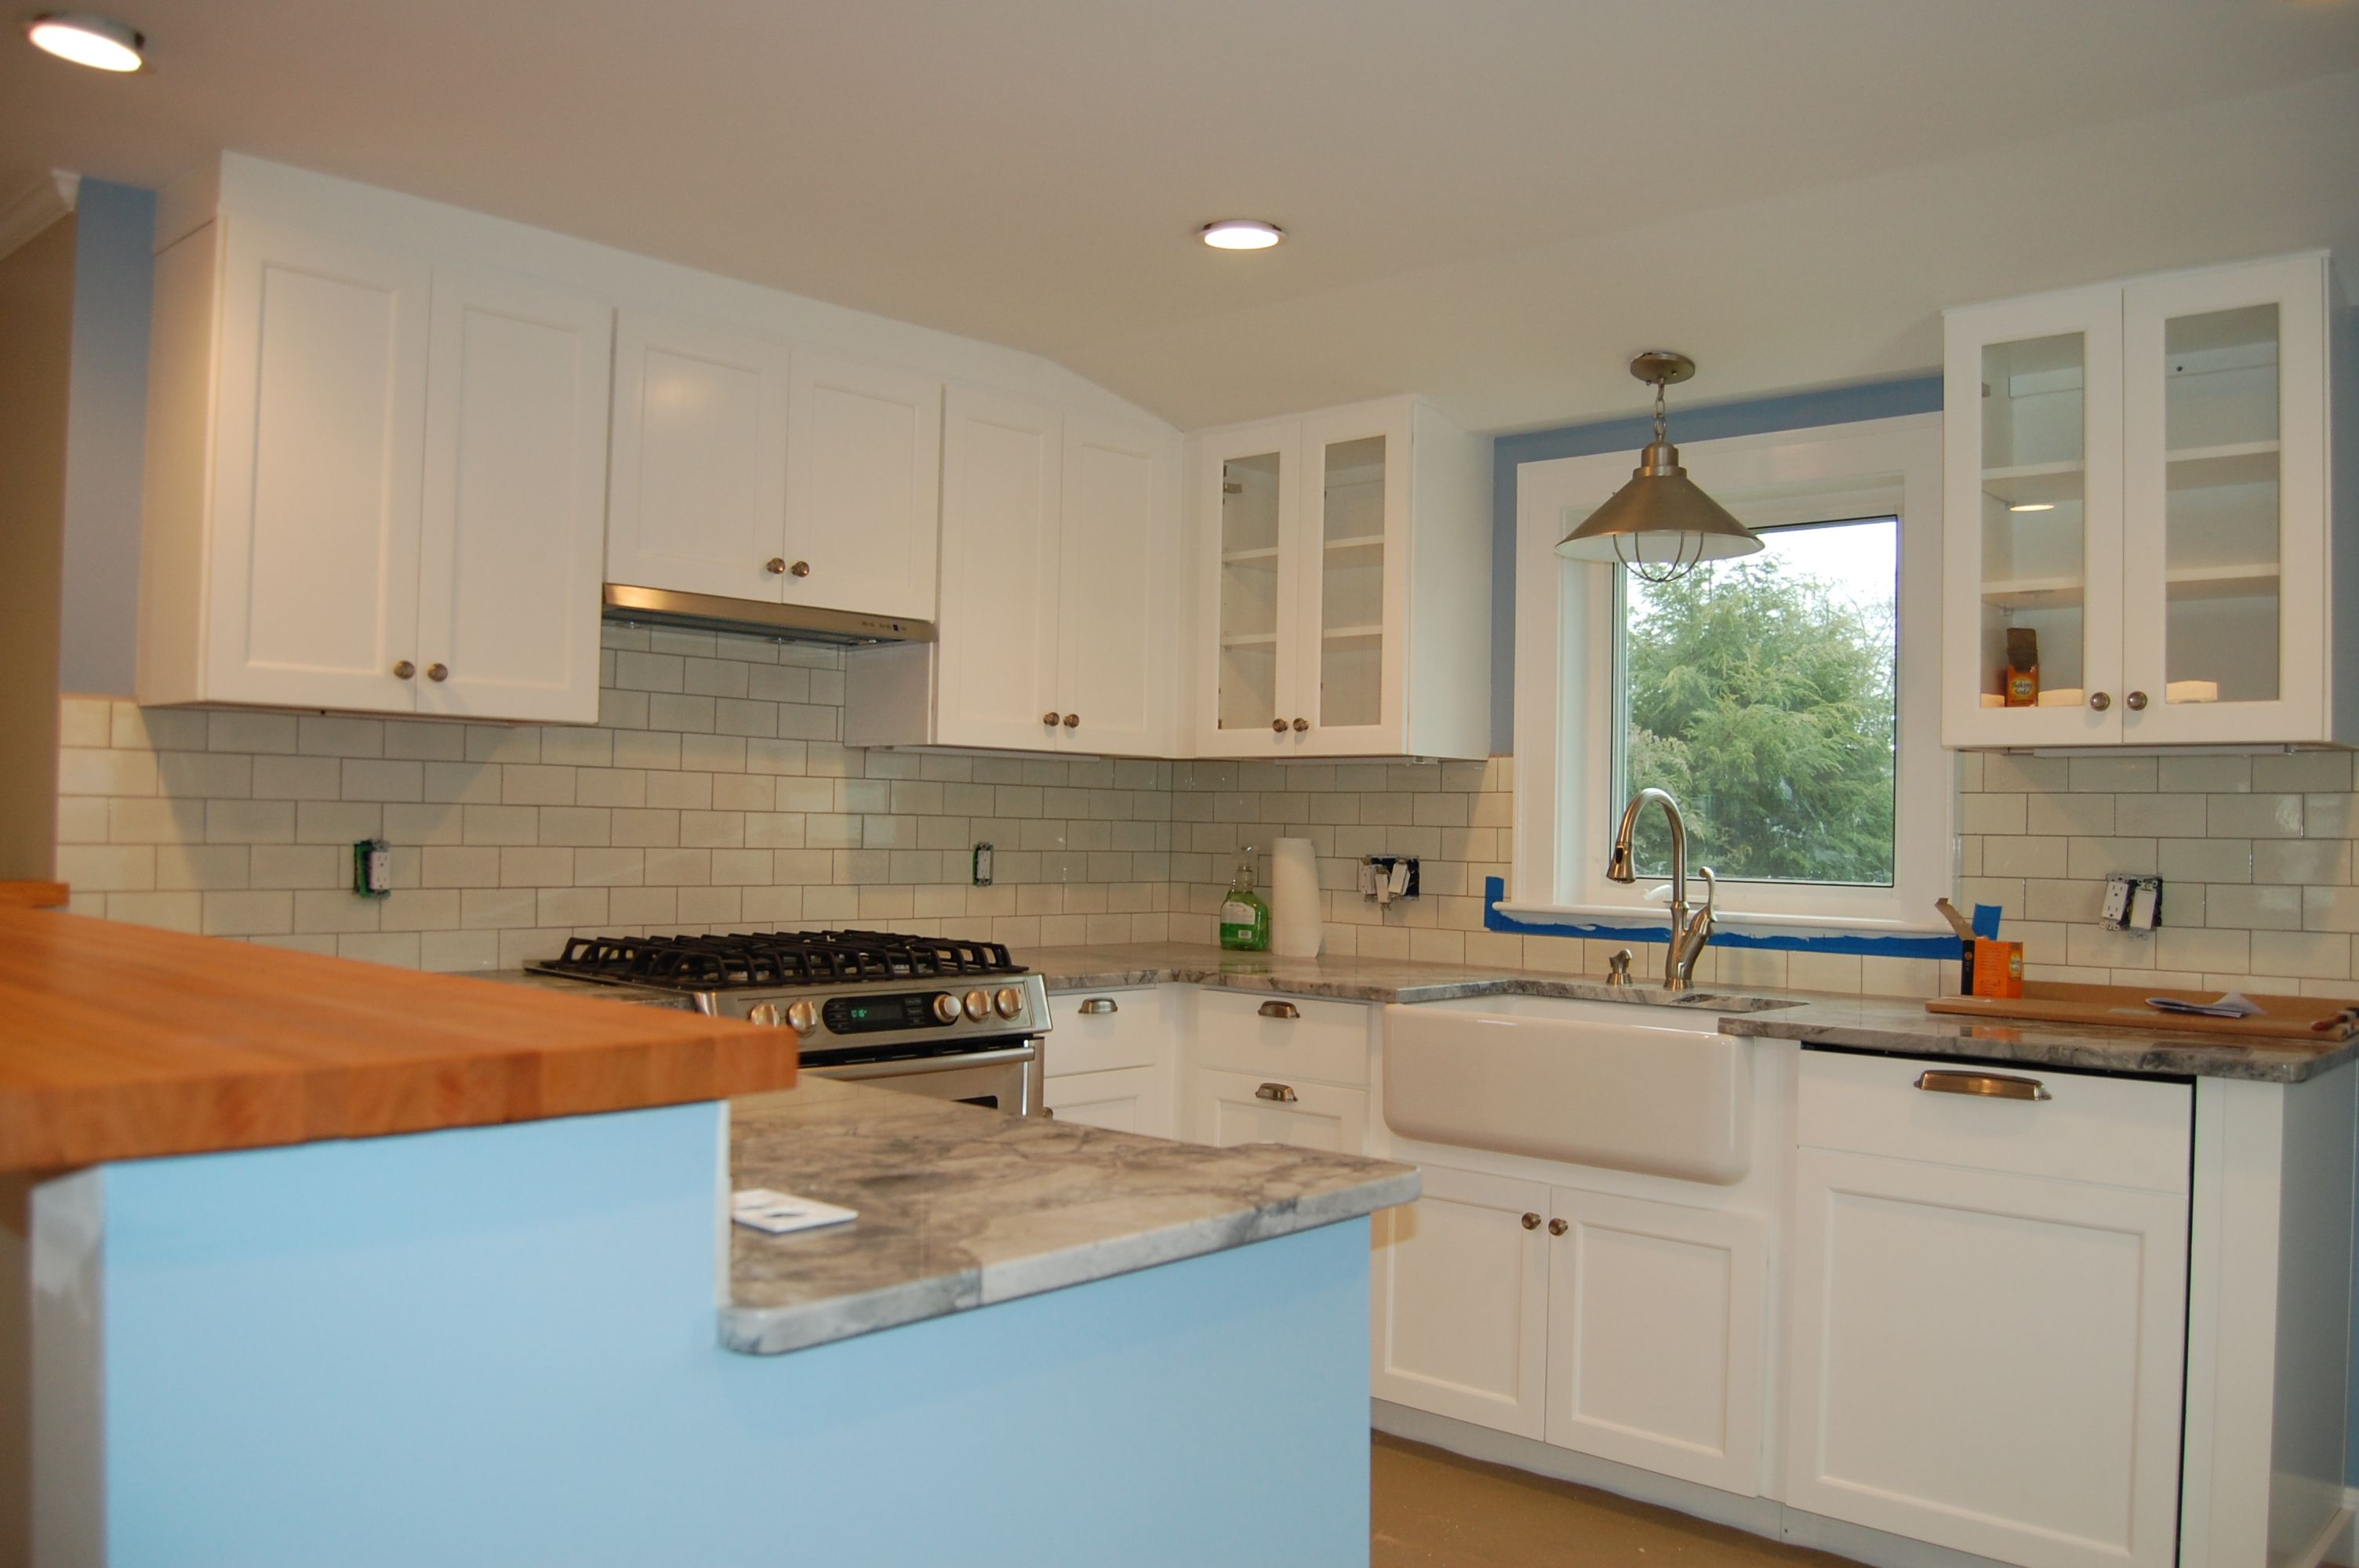 Bgb projects kitchen renovation completed on 1940 s cape for Kitchen renovation styles